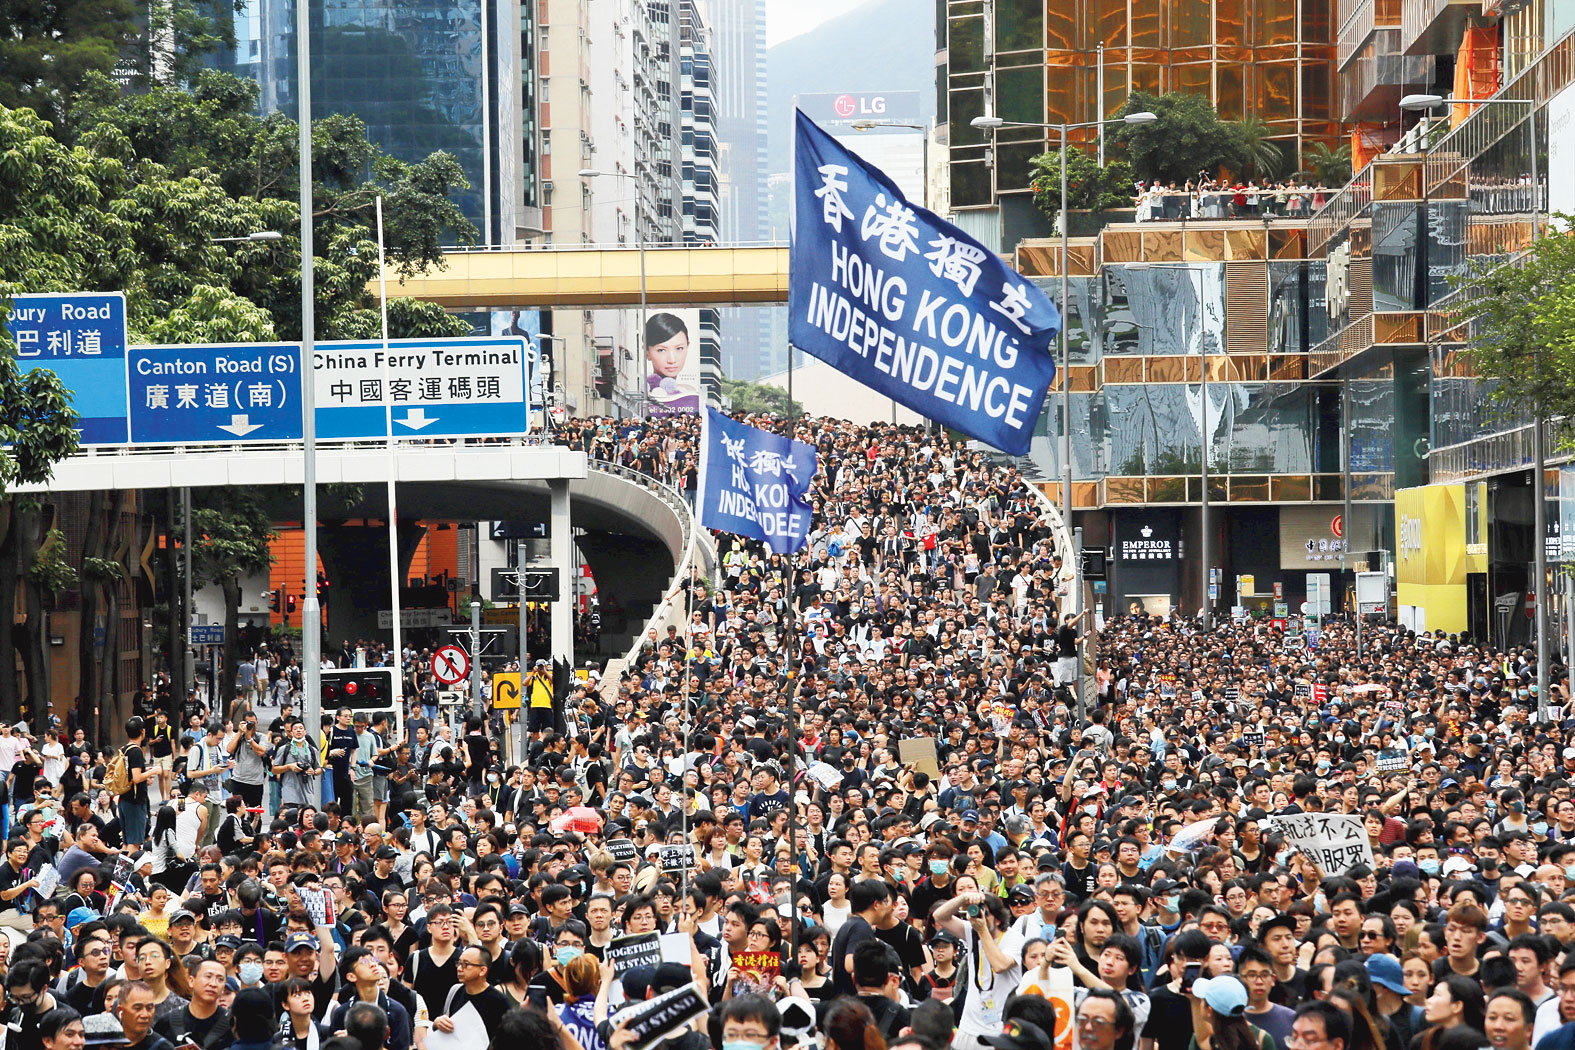 Carrying a banner calling for Hong Kong's independence, protesters flood the streets on Sunday.